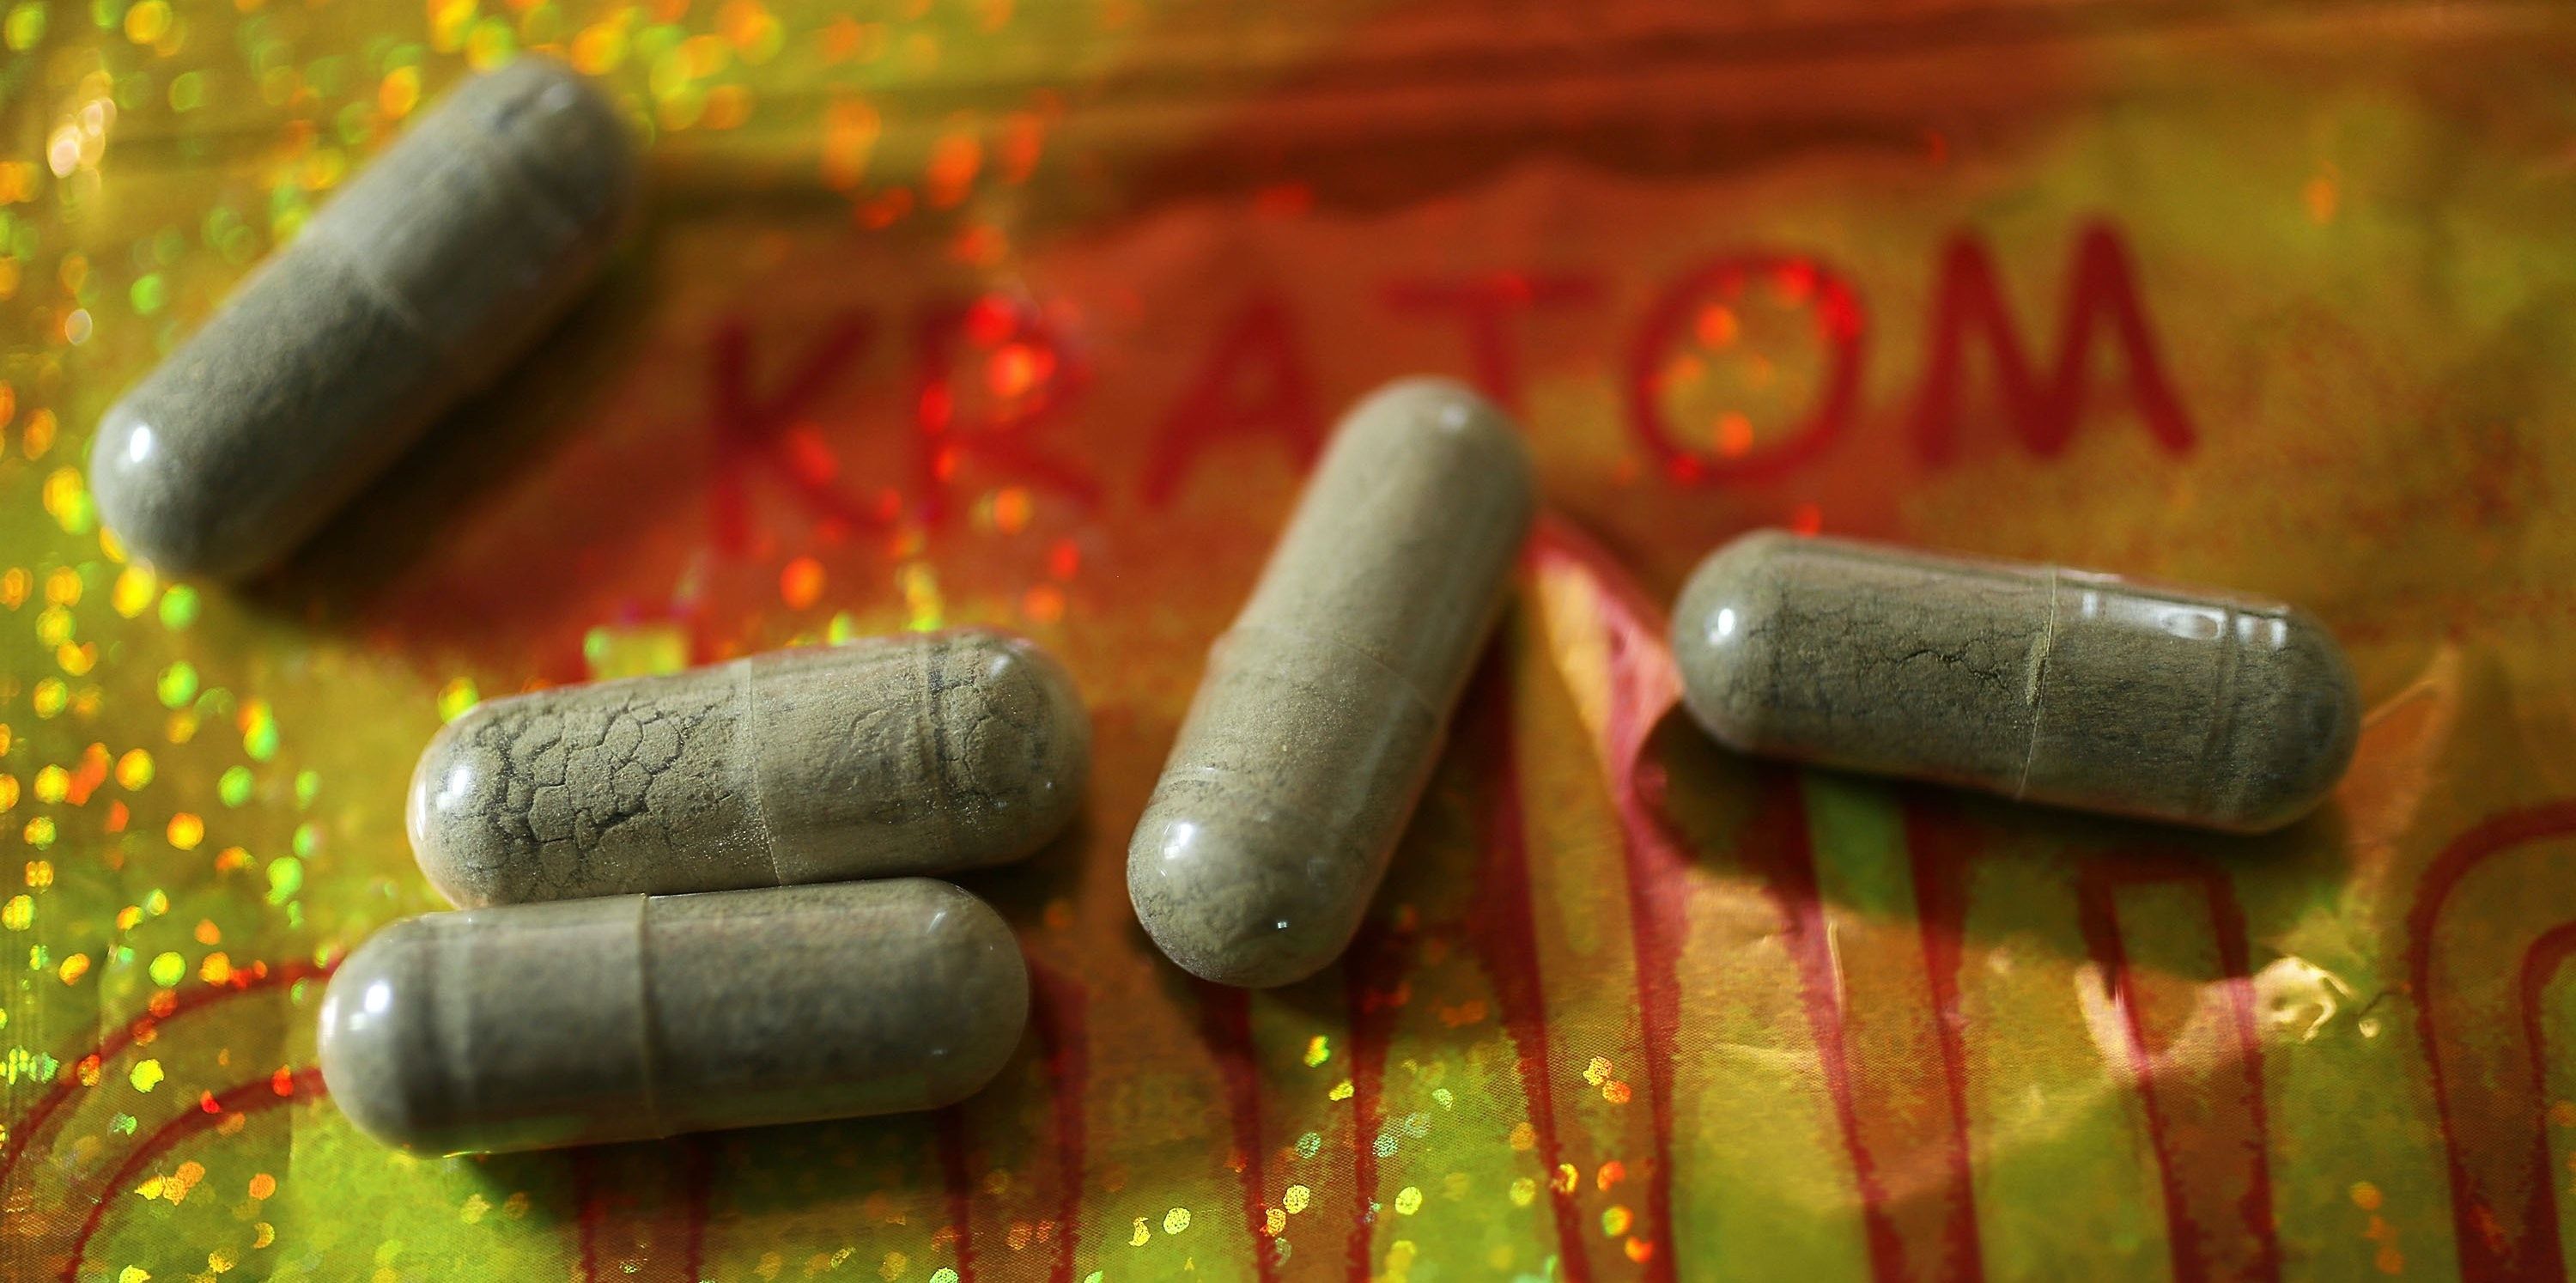 MIAMI, FL - MAY 10:  In this photo illustration, capsules of the drug Kratom are seen on May 10, 2016 in Miami, Florida. The herbal supplement is a psychoactive drug derived from the leaves of the kratom plant and it's been reported that people are using the supplement to get high and some states are banning the supplement.  (Photo by Joe Raedle/Getty Images)